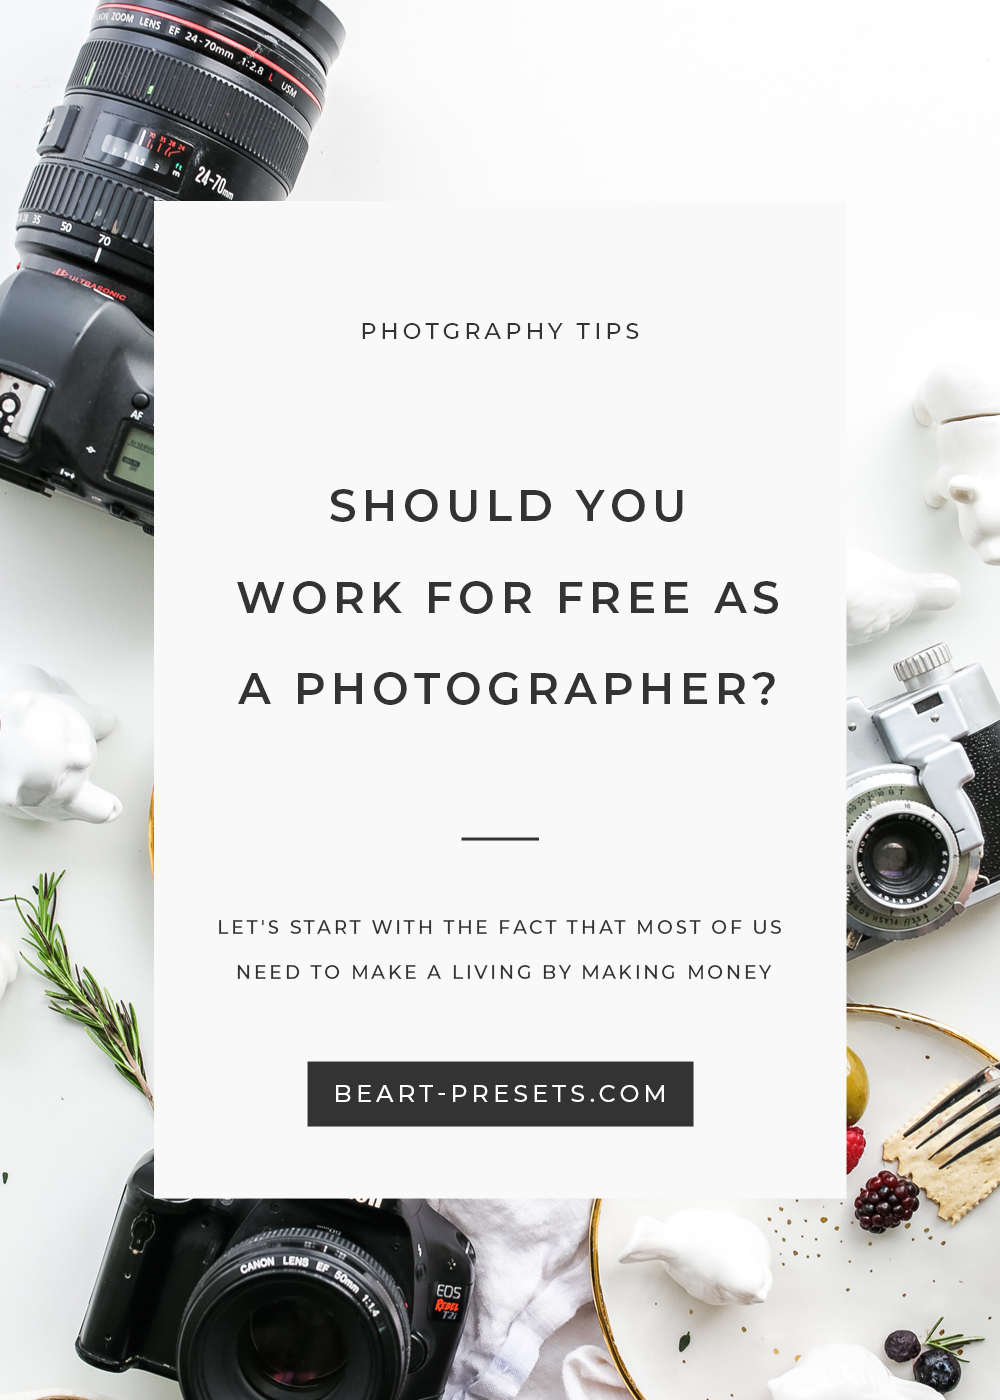 should you work for free as a photographer